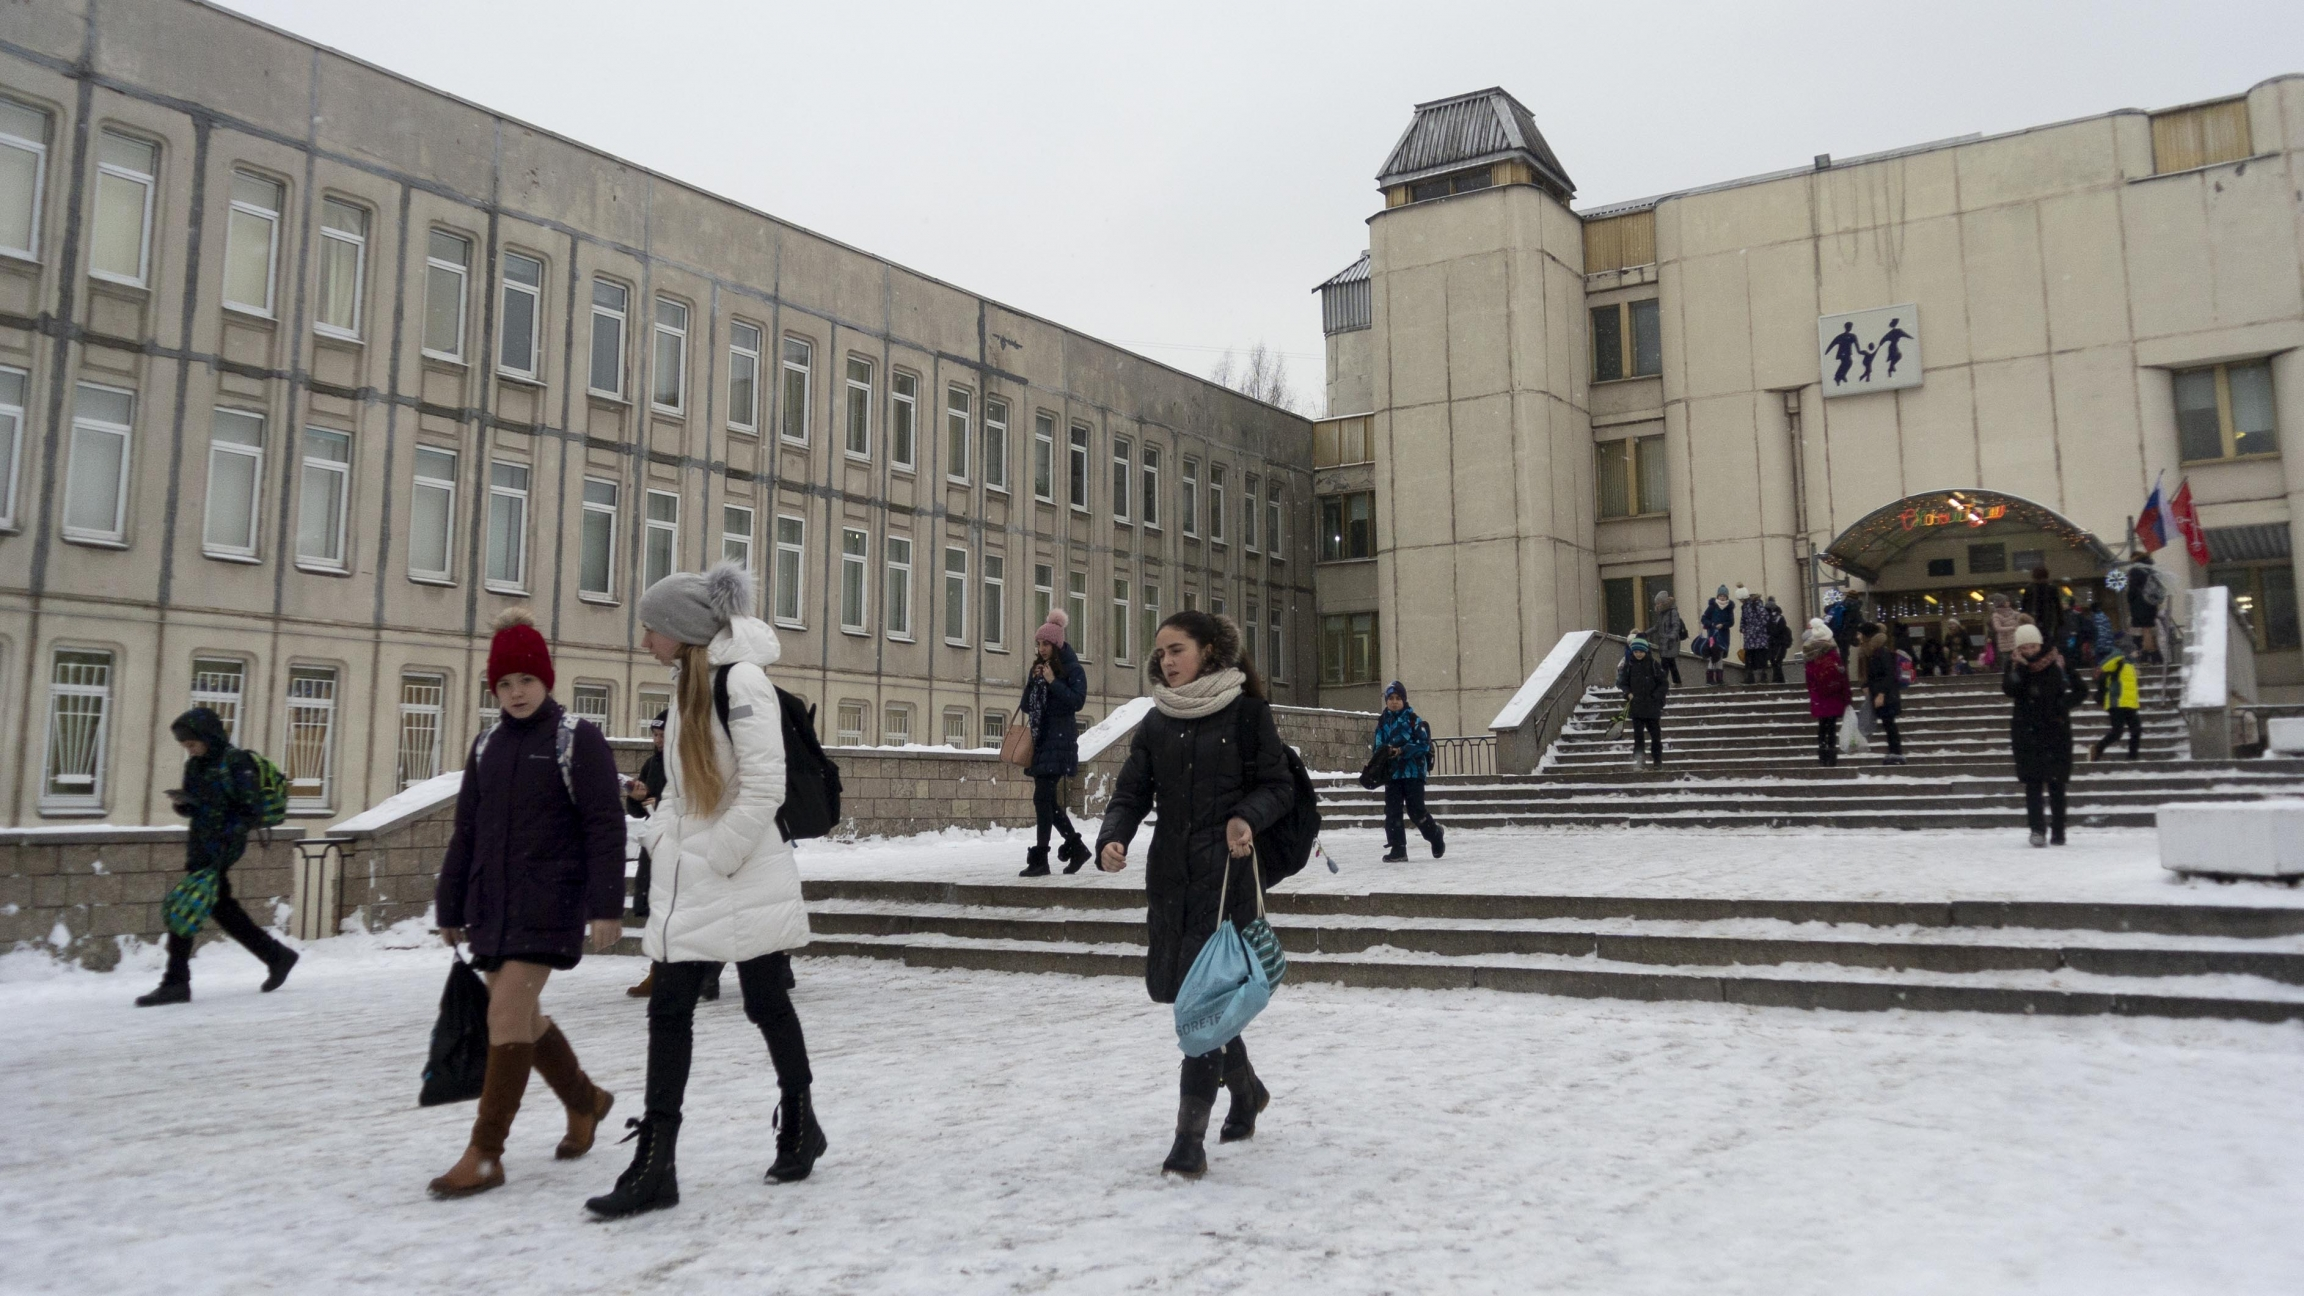 In this photo taken on Thursday, Dec. 20, 2018, students come out of a school building in St. Petersburg, Russia.